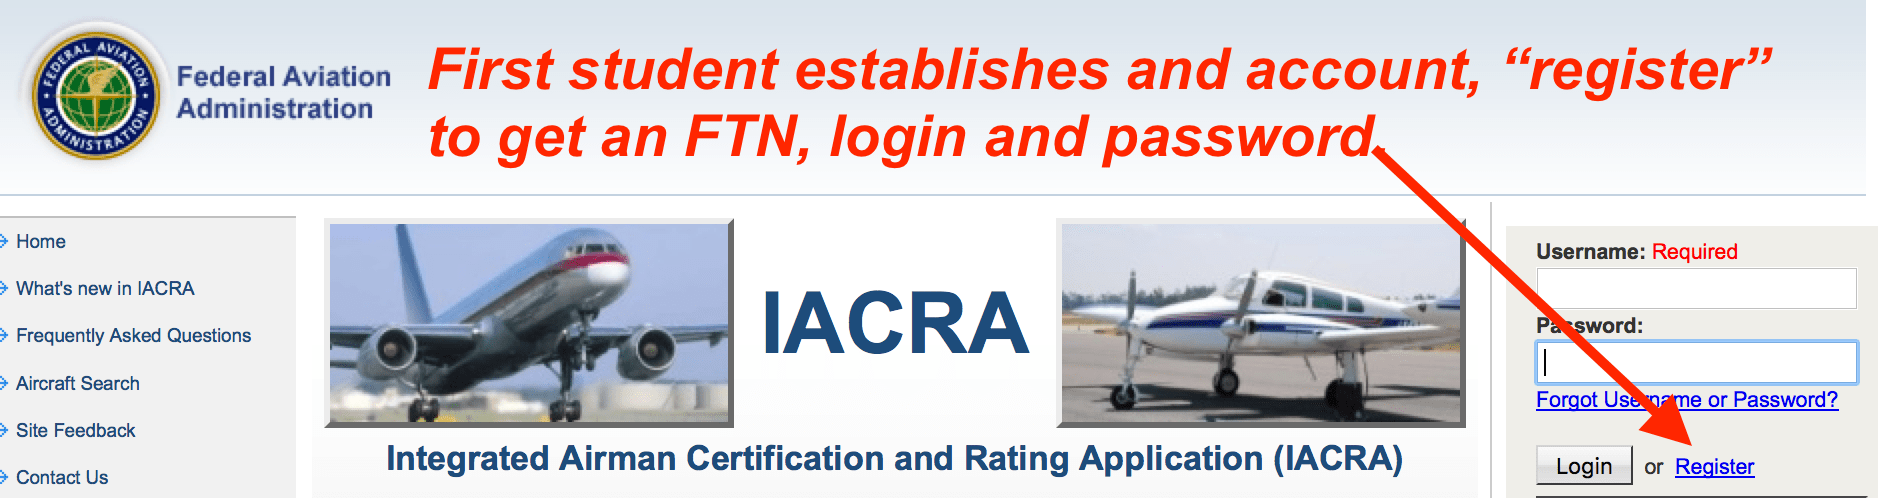 How to apply in iacra for a student pilot certificate safe iacrastudentregister acquireftn ftnsucess xflitez Images